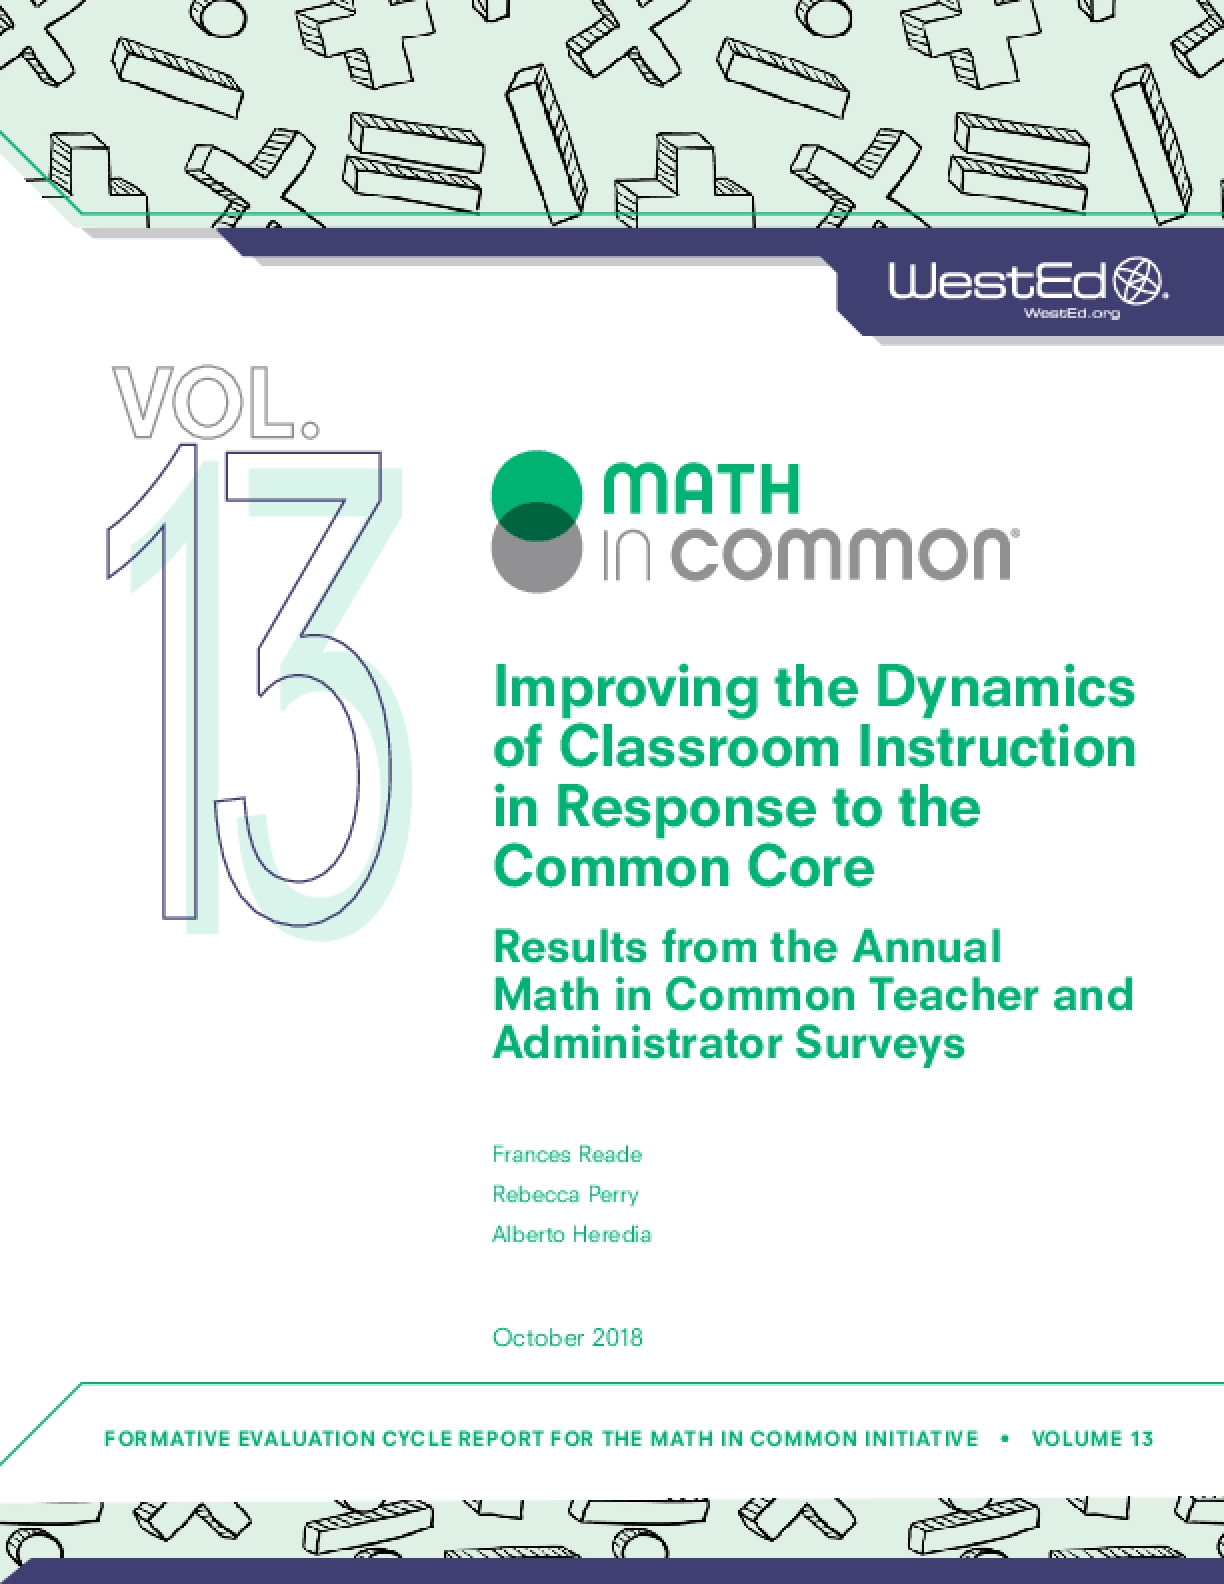 Improving the Dynamics of Classroom Instruction in Response to the Common Core